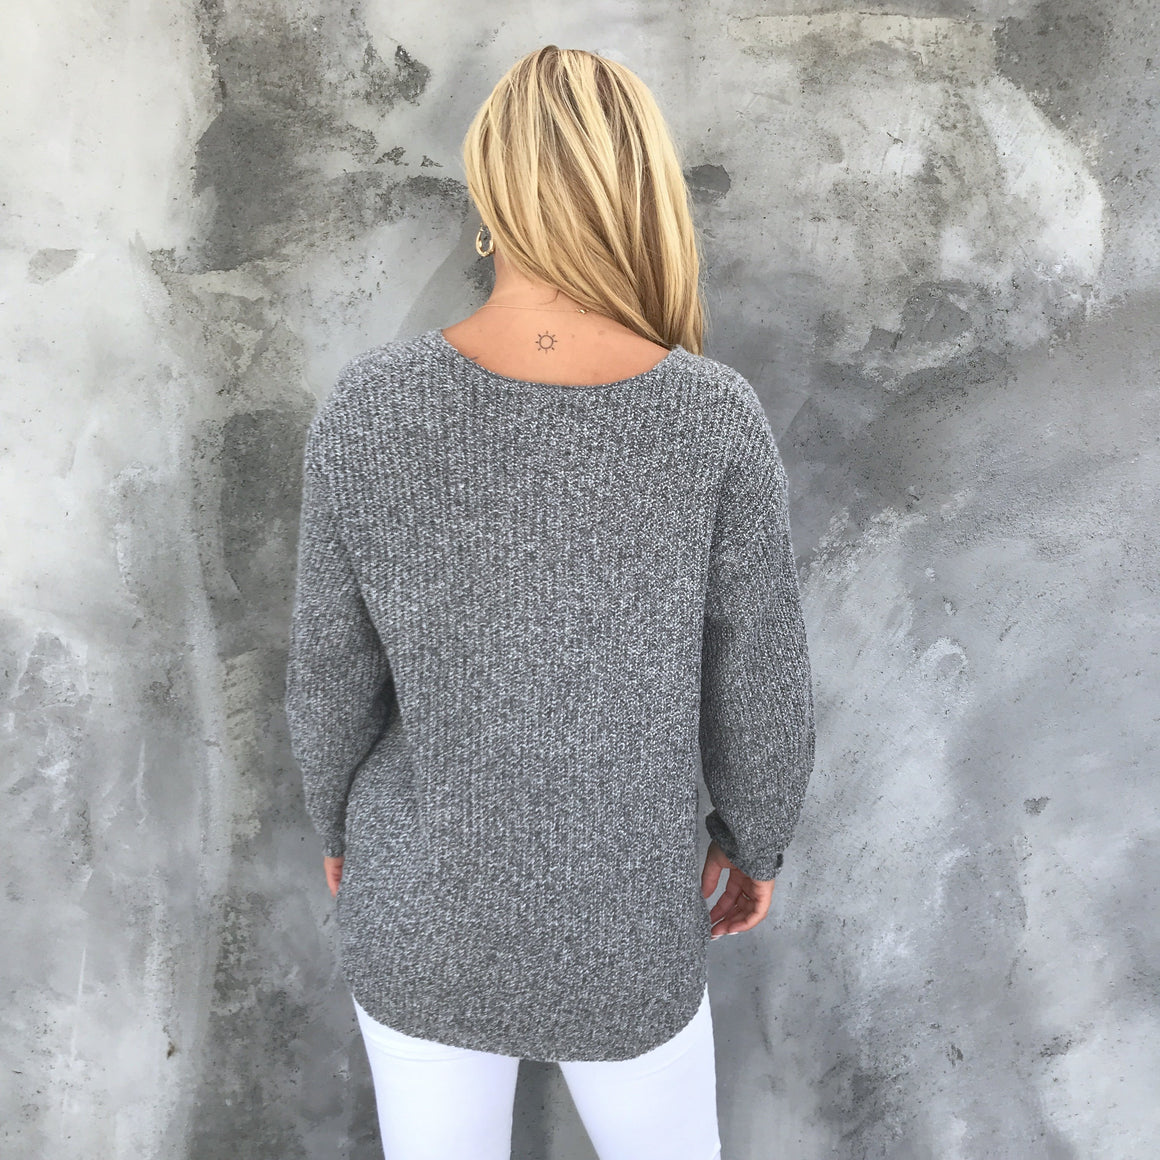 Cuddle Weather Knit Sweater In Charcoal Grey